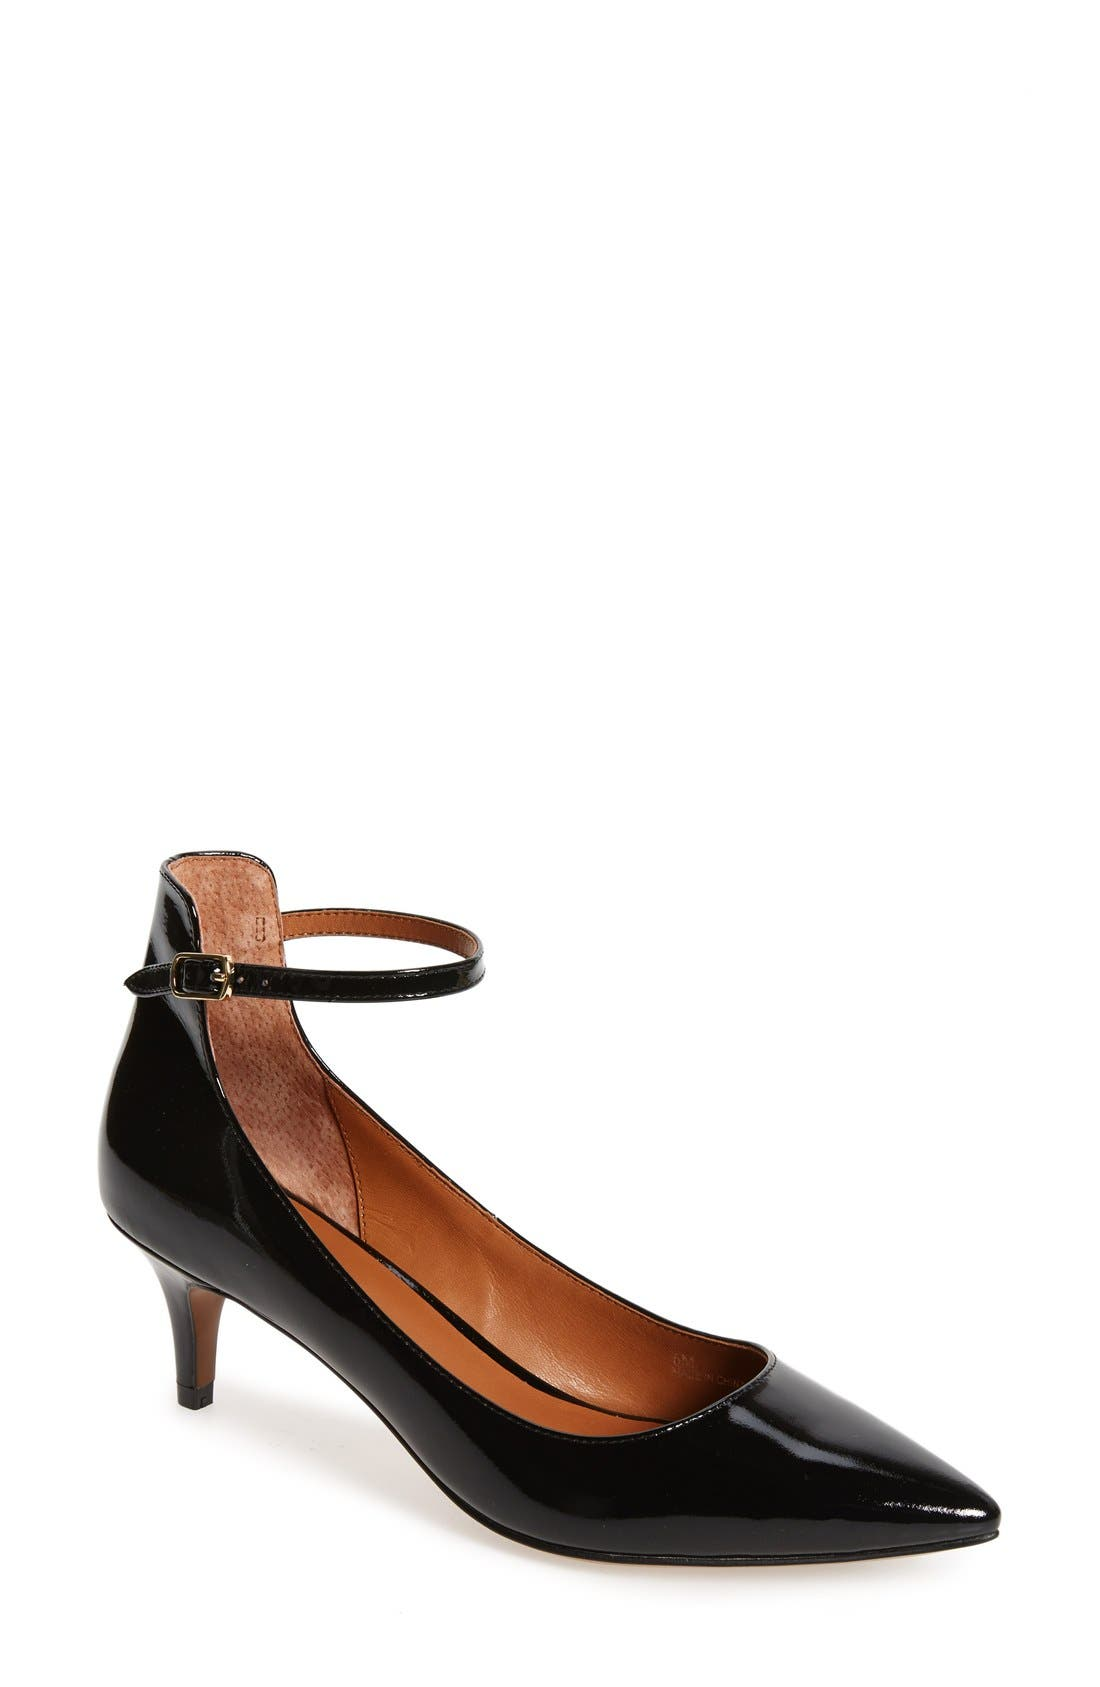 'Cutie' Ankle Strap Pointy Toe Pump,                             Main thumbnail 1, color,                             Black Patent